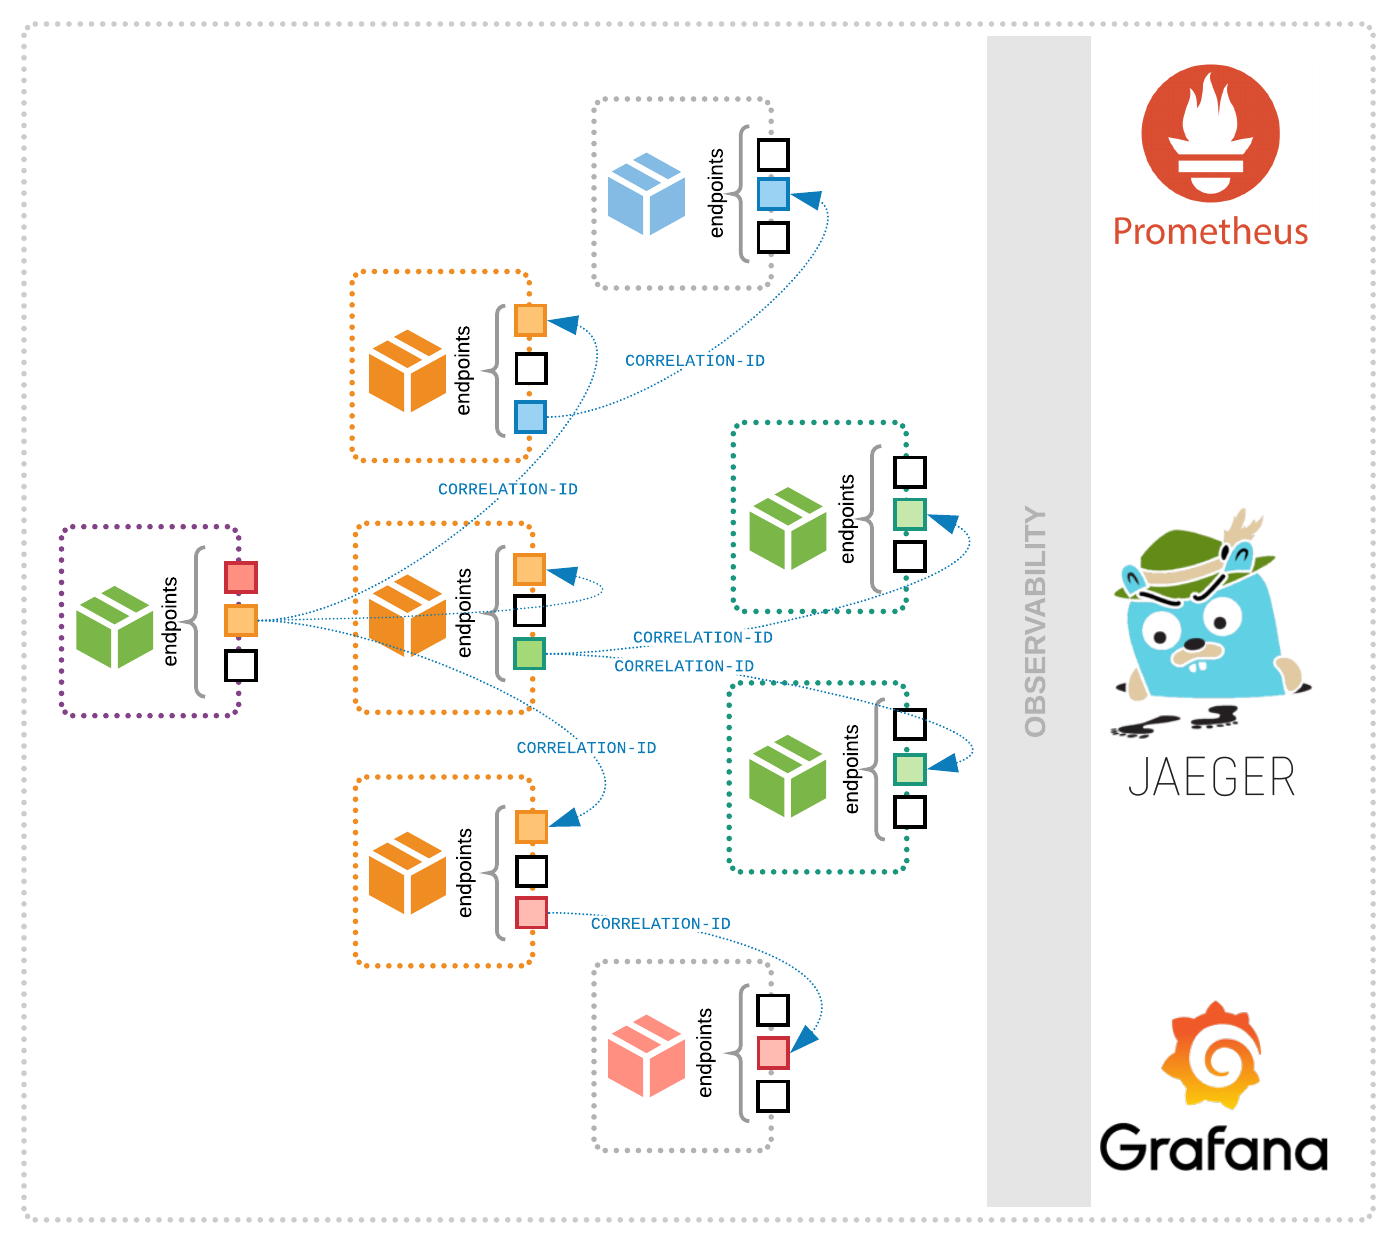 The basics of monitoring and observability in microservices